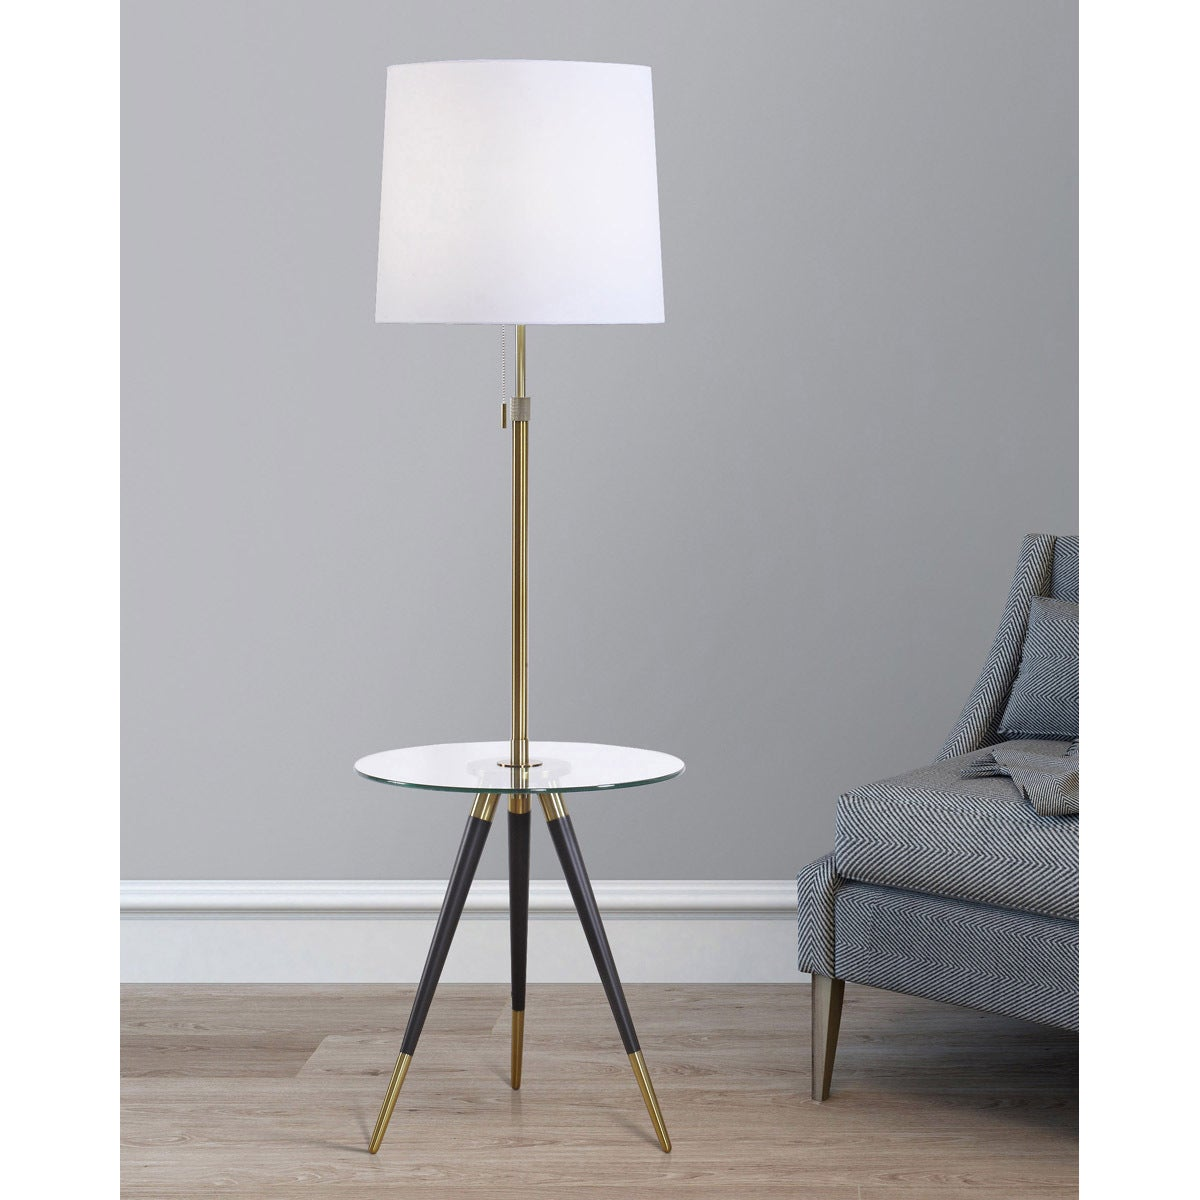 Premiere Antique Br And Clear Gl Tripod Table Floor Lamp With Fabric Shade Free Shipping Today 14604837